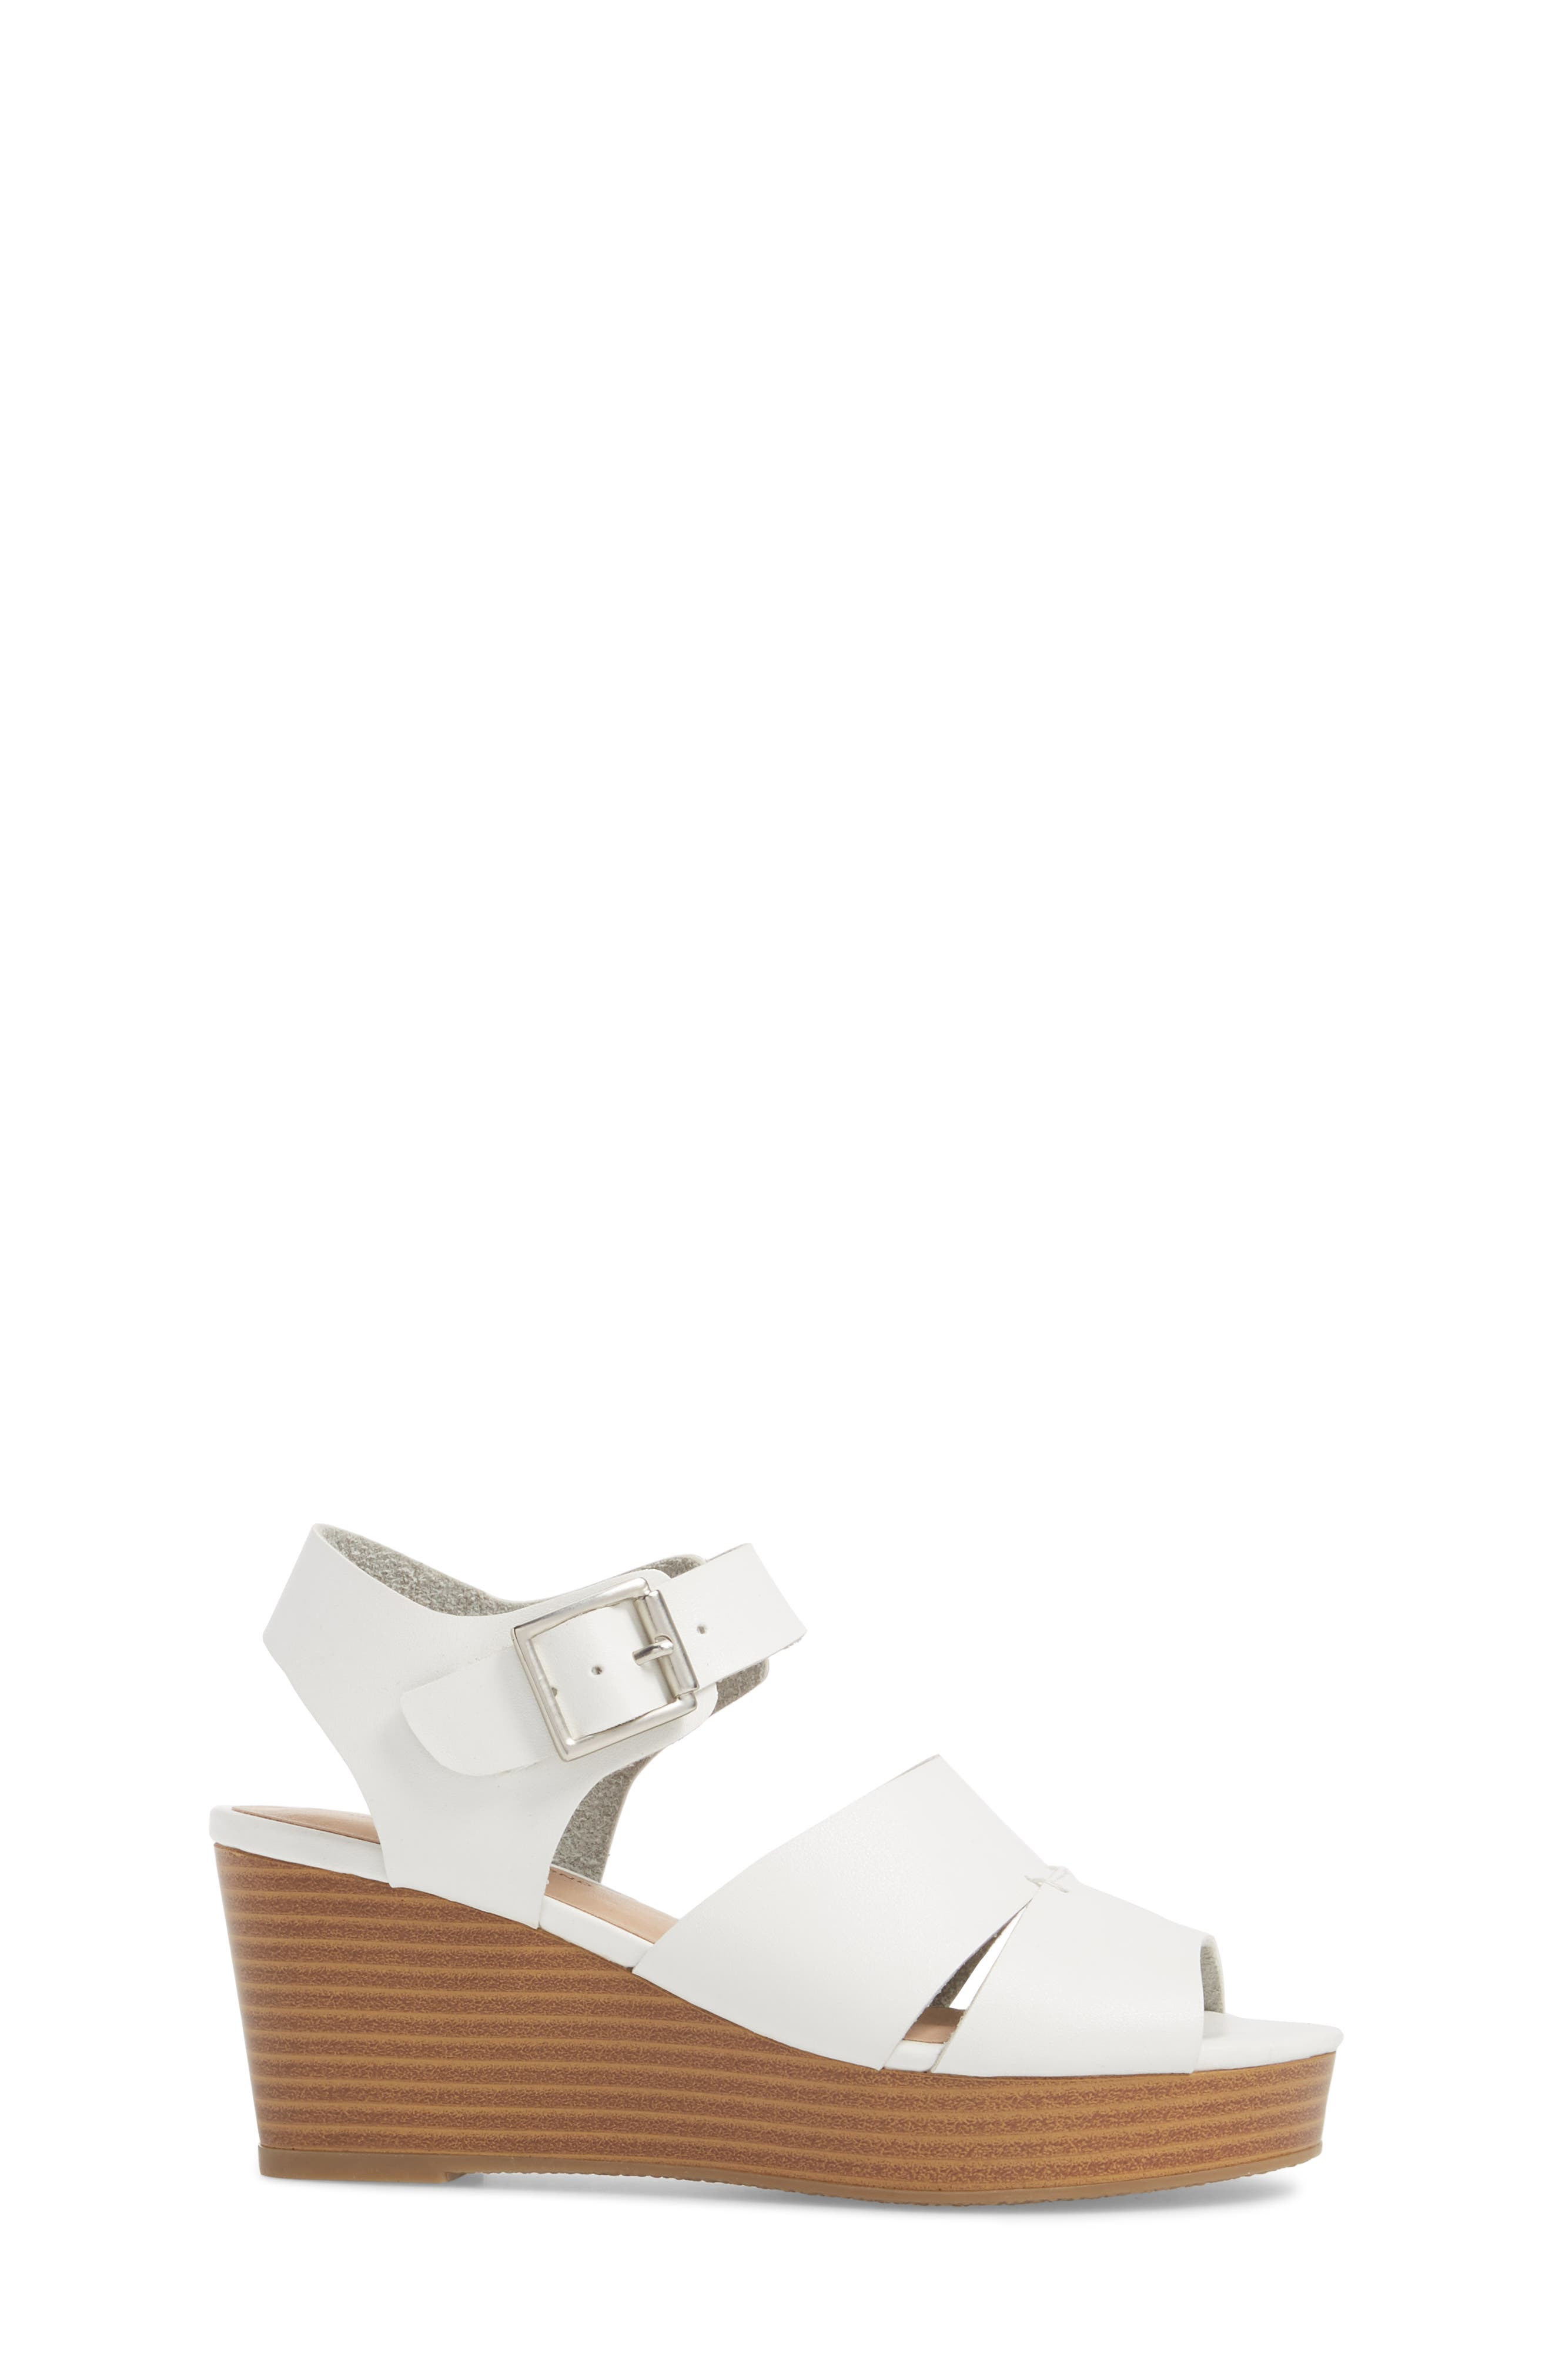 Hunter Platform Wedge Sandal,                             Alternate thumbnail 3, color,                             White Faux Leather